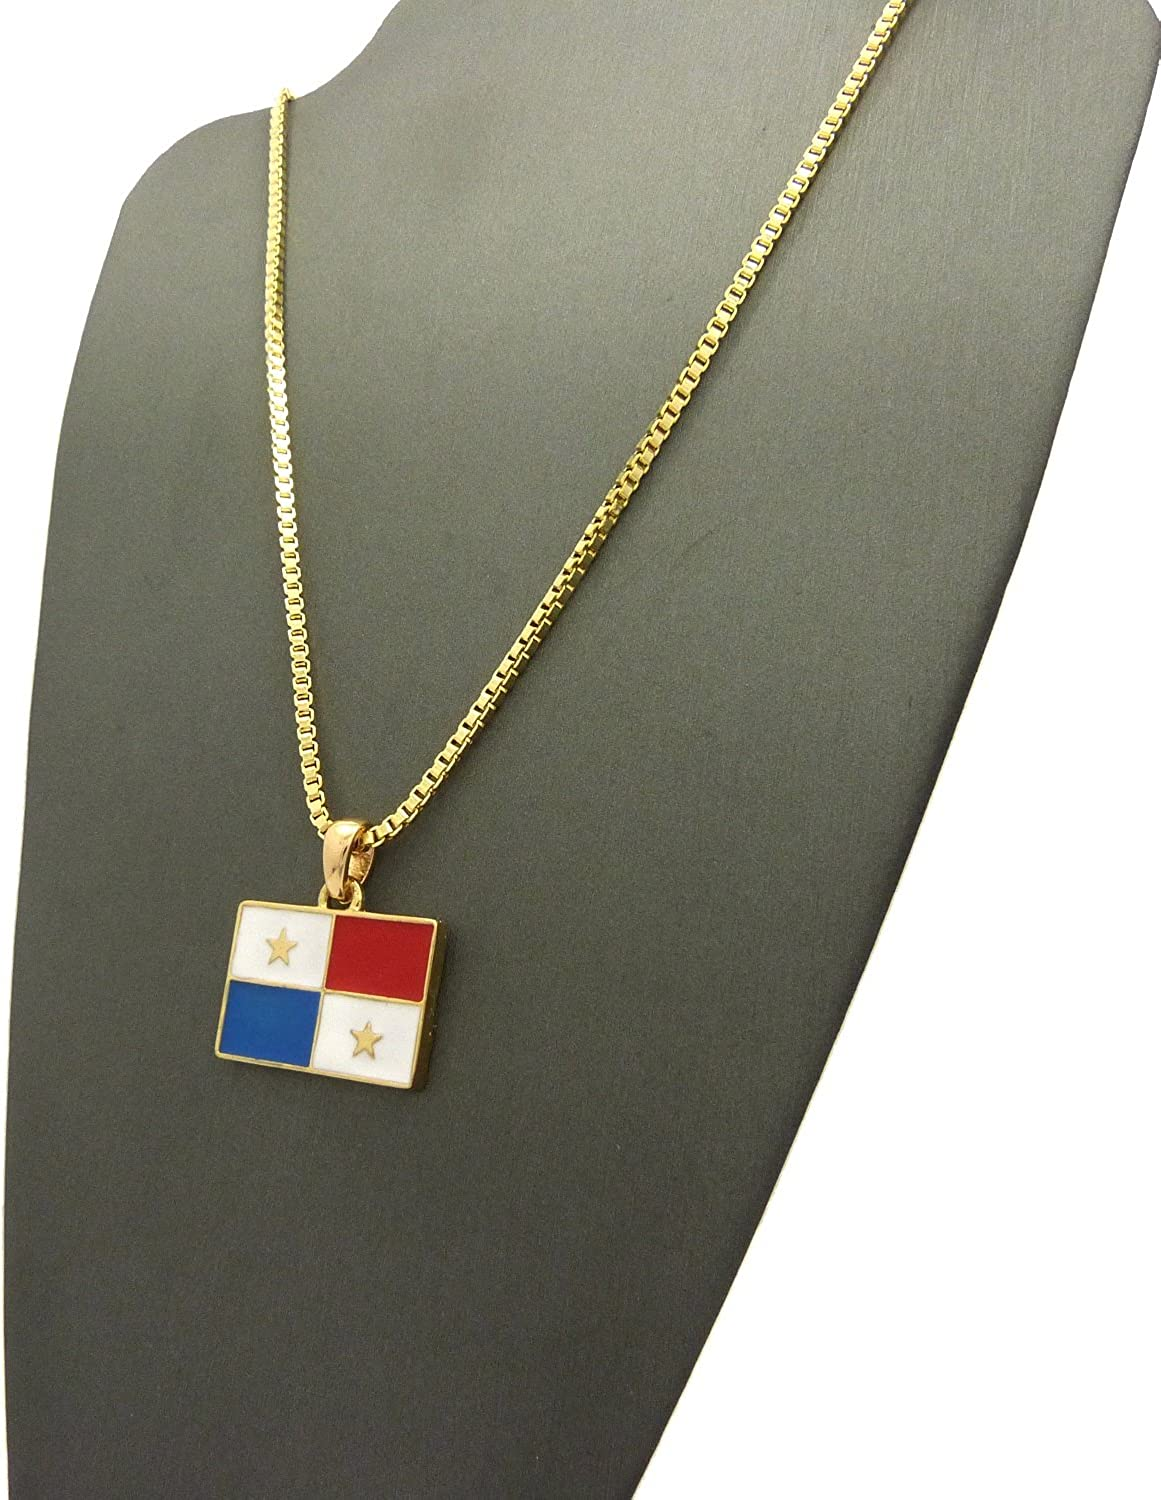 NYFASHION101 Flag of Panama Micro Pendant with Chain Necklace